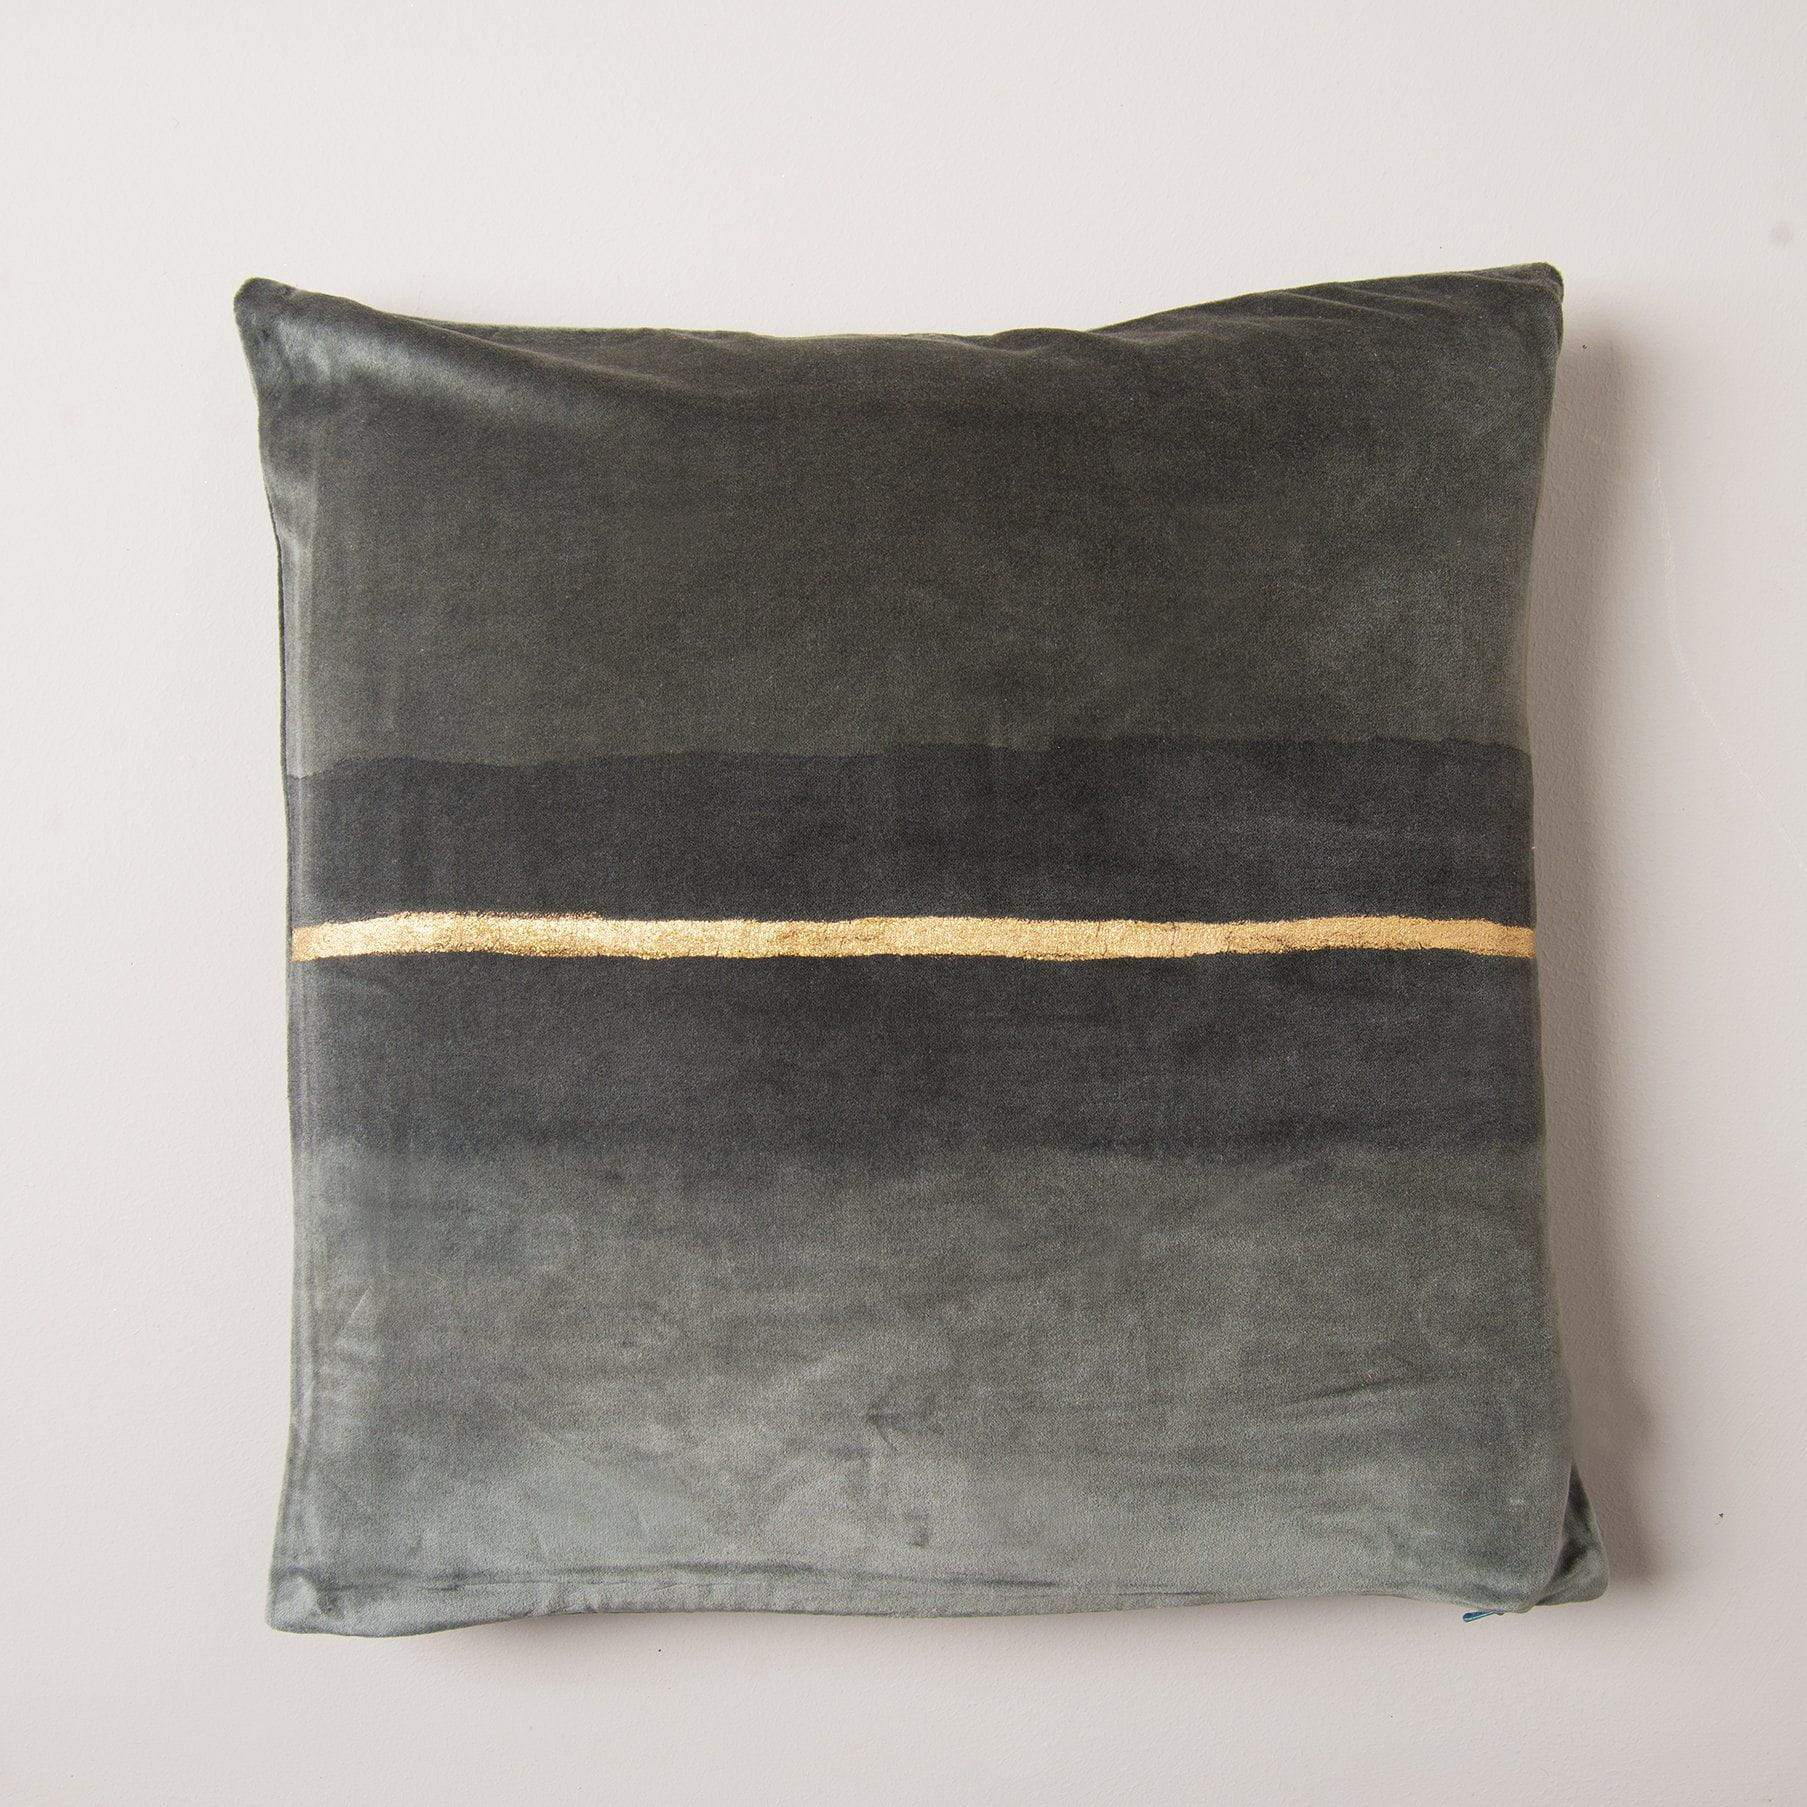 Ian Snow Ltd Gold Glitter Hand Painted Light Grey Cotton Velvet Cushion